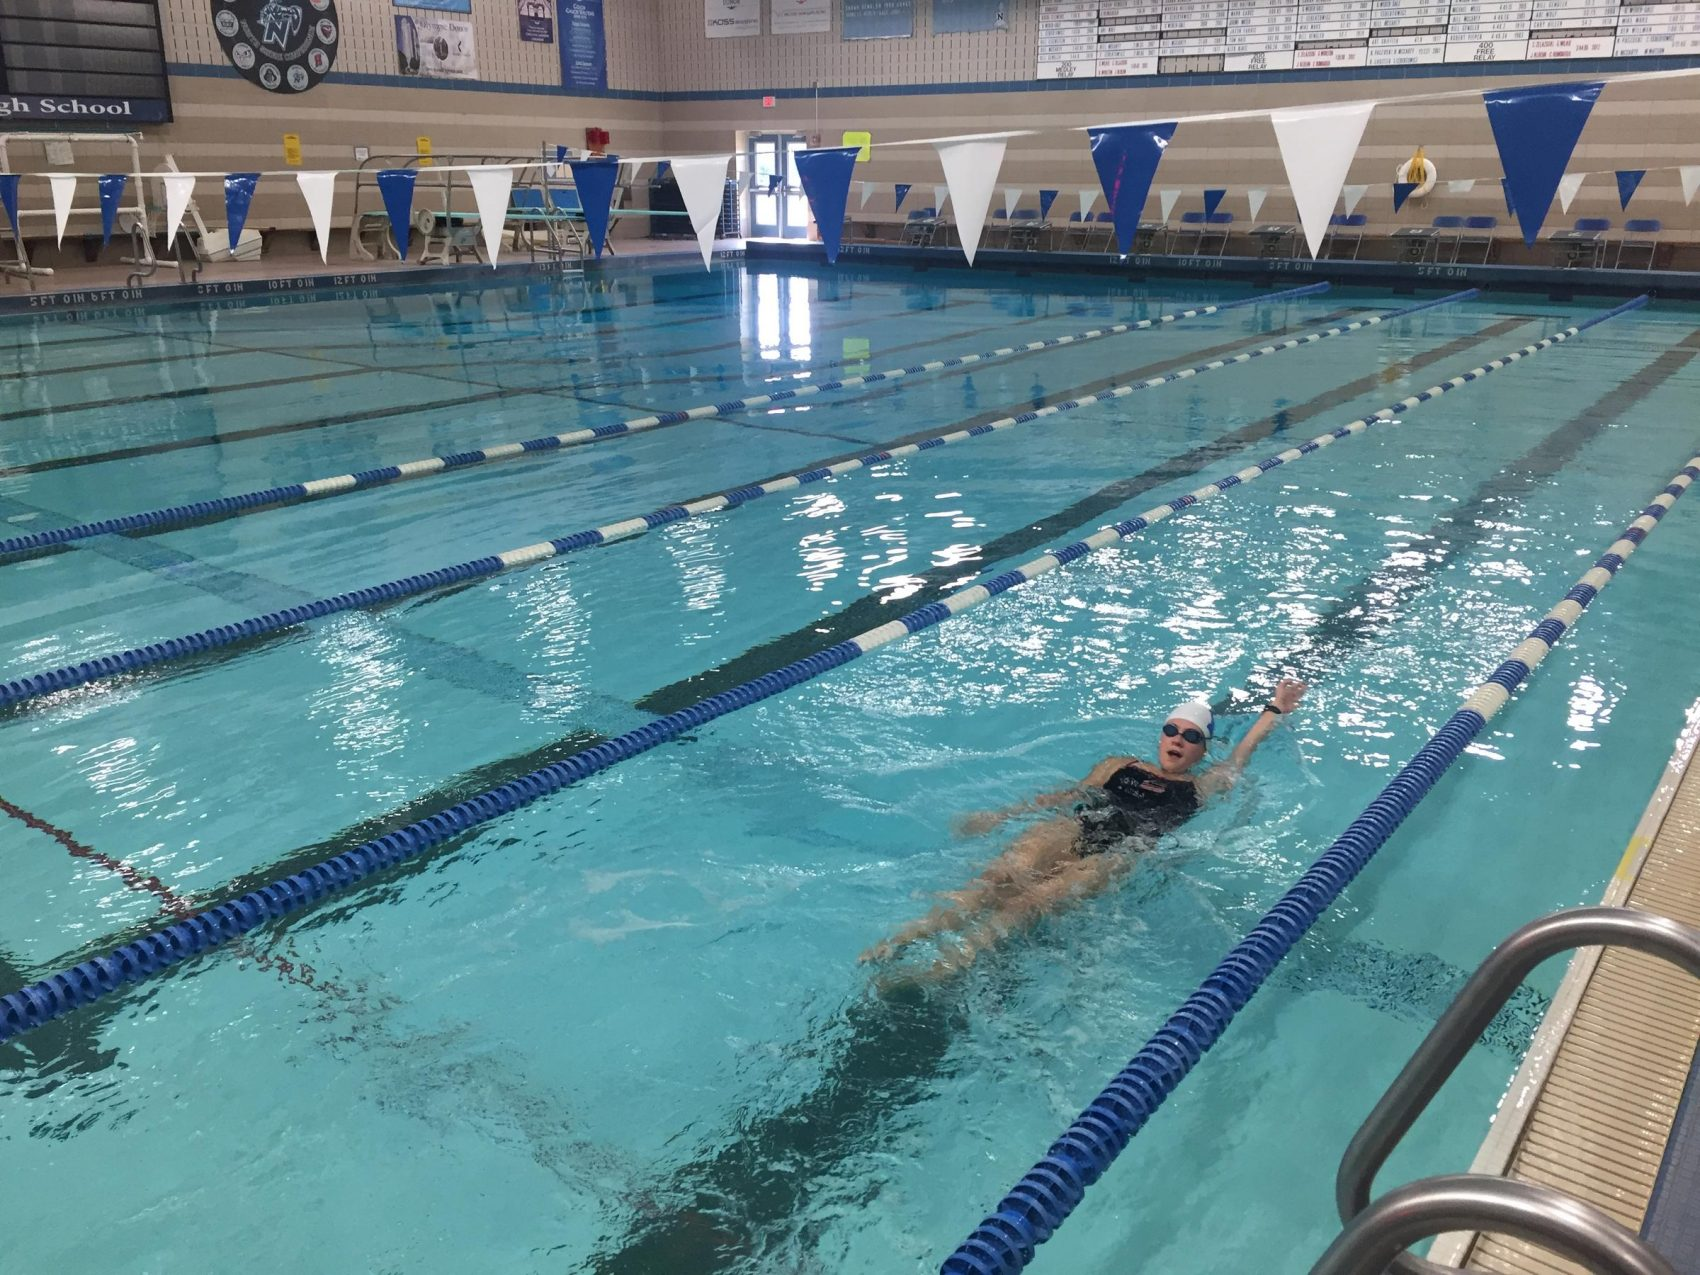 Nicolet High School senior Elizabeth Sullivan demonstrates how she counts strokes for her races. (Rachel Morello/WUWM)